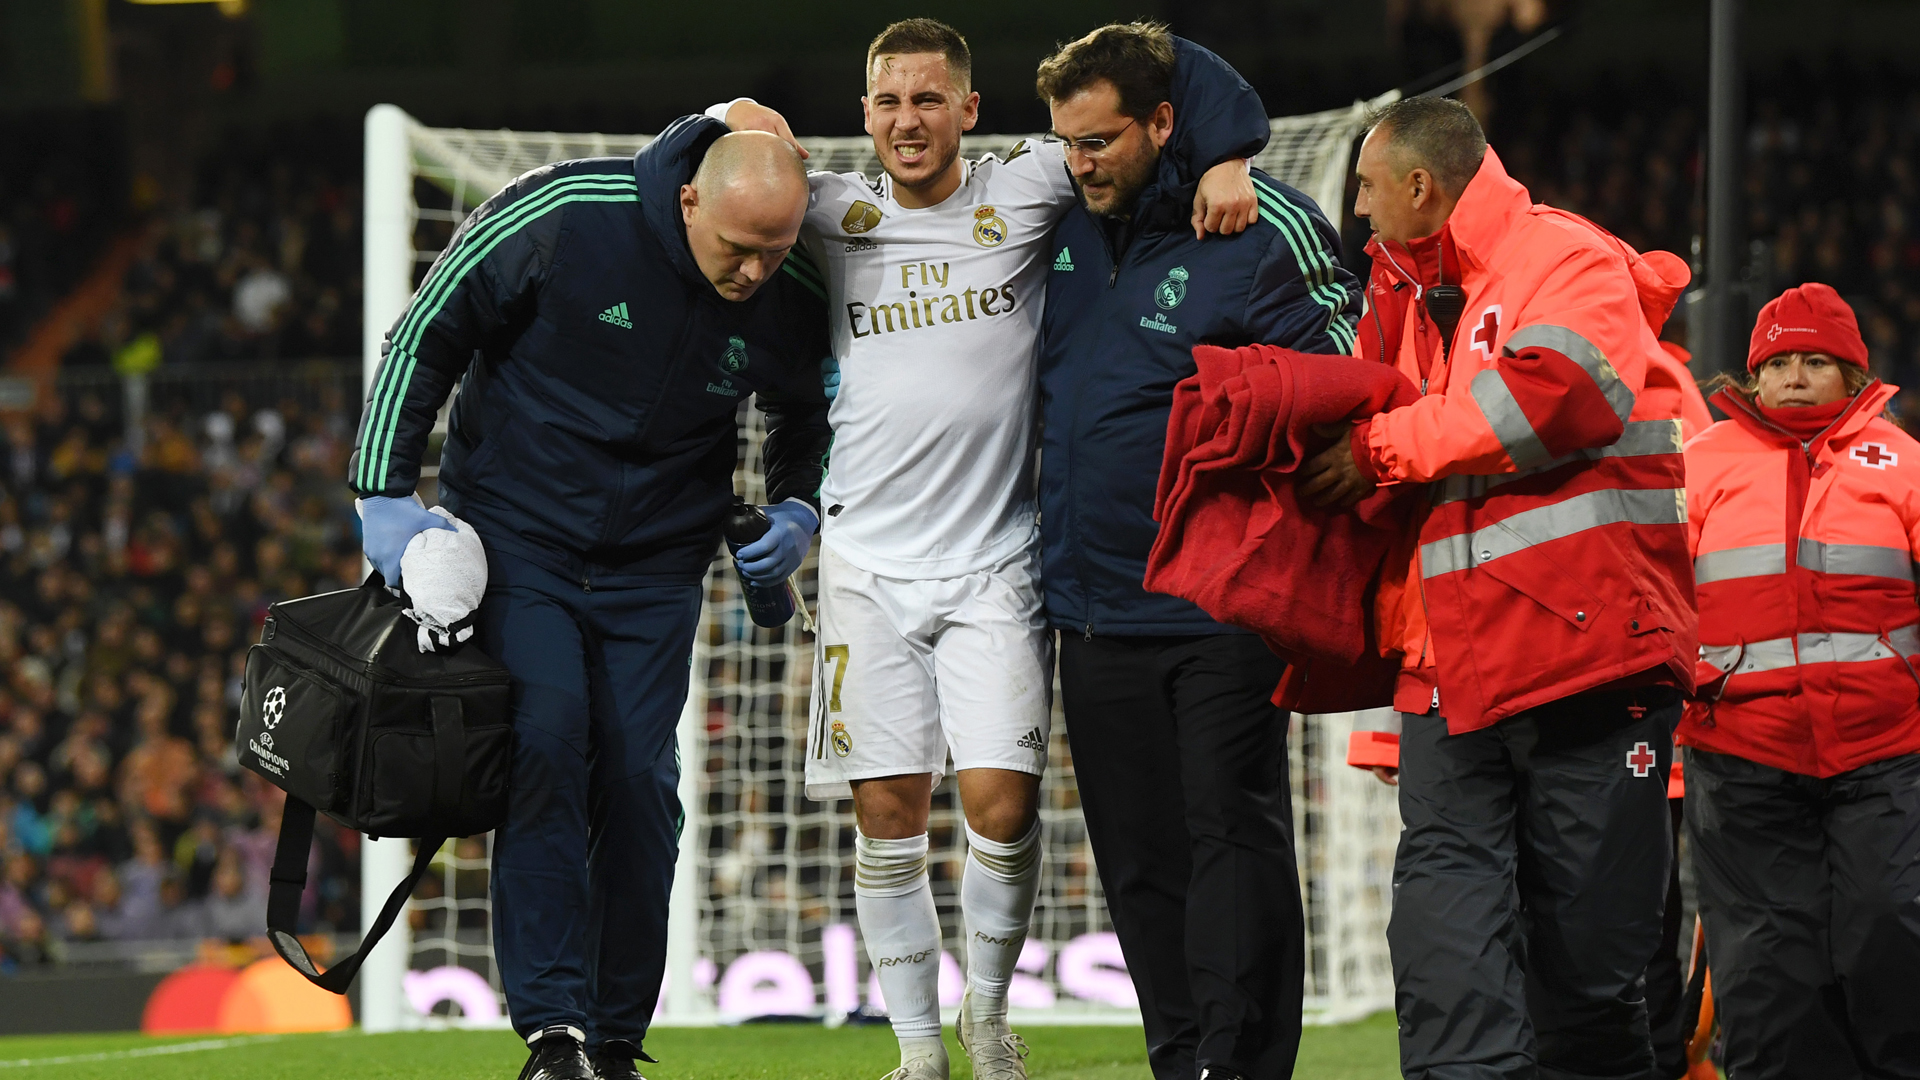 Zidane hopeful injured Hazard does not need surgery